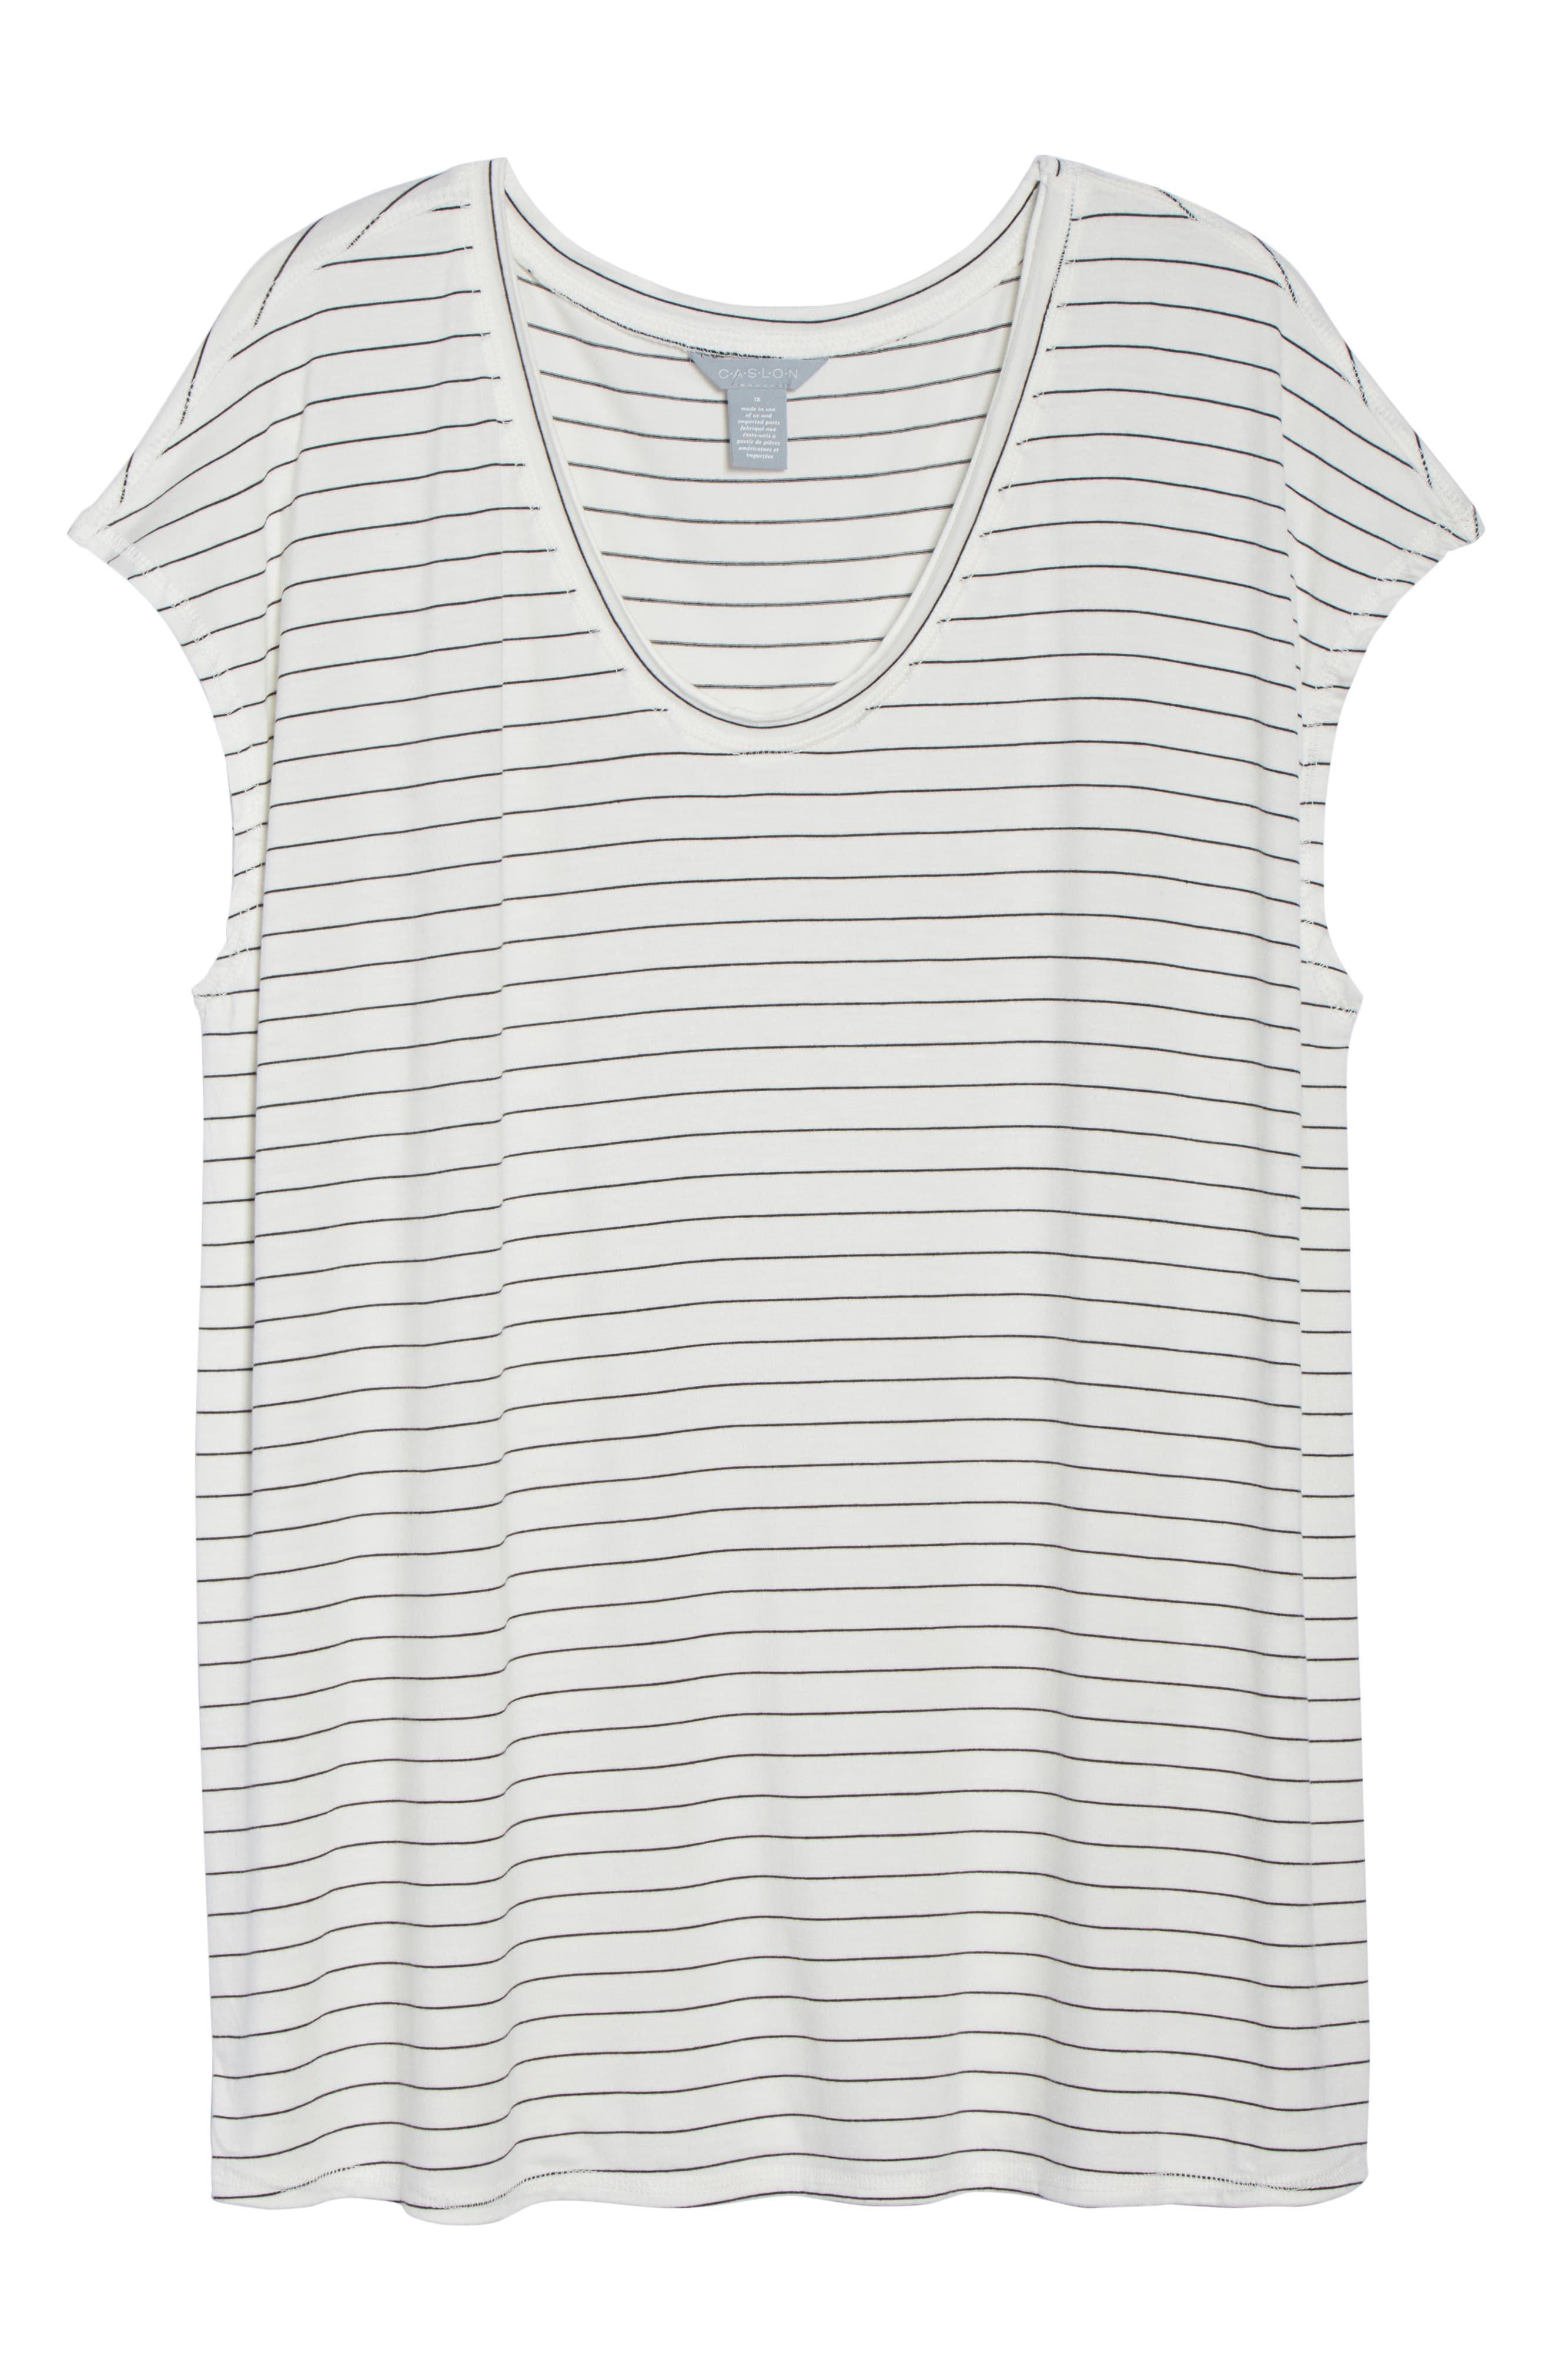 Off-Duty Stretch Knit Top,                             Alternate thumbnail 7, color,                             001